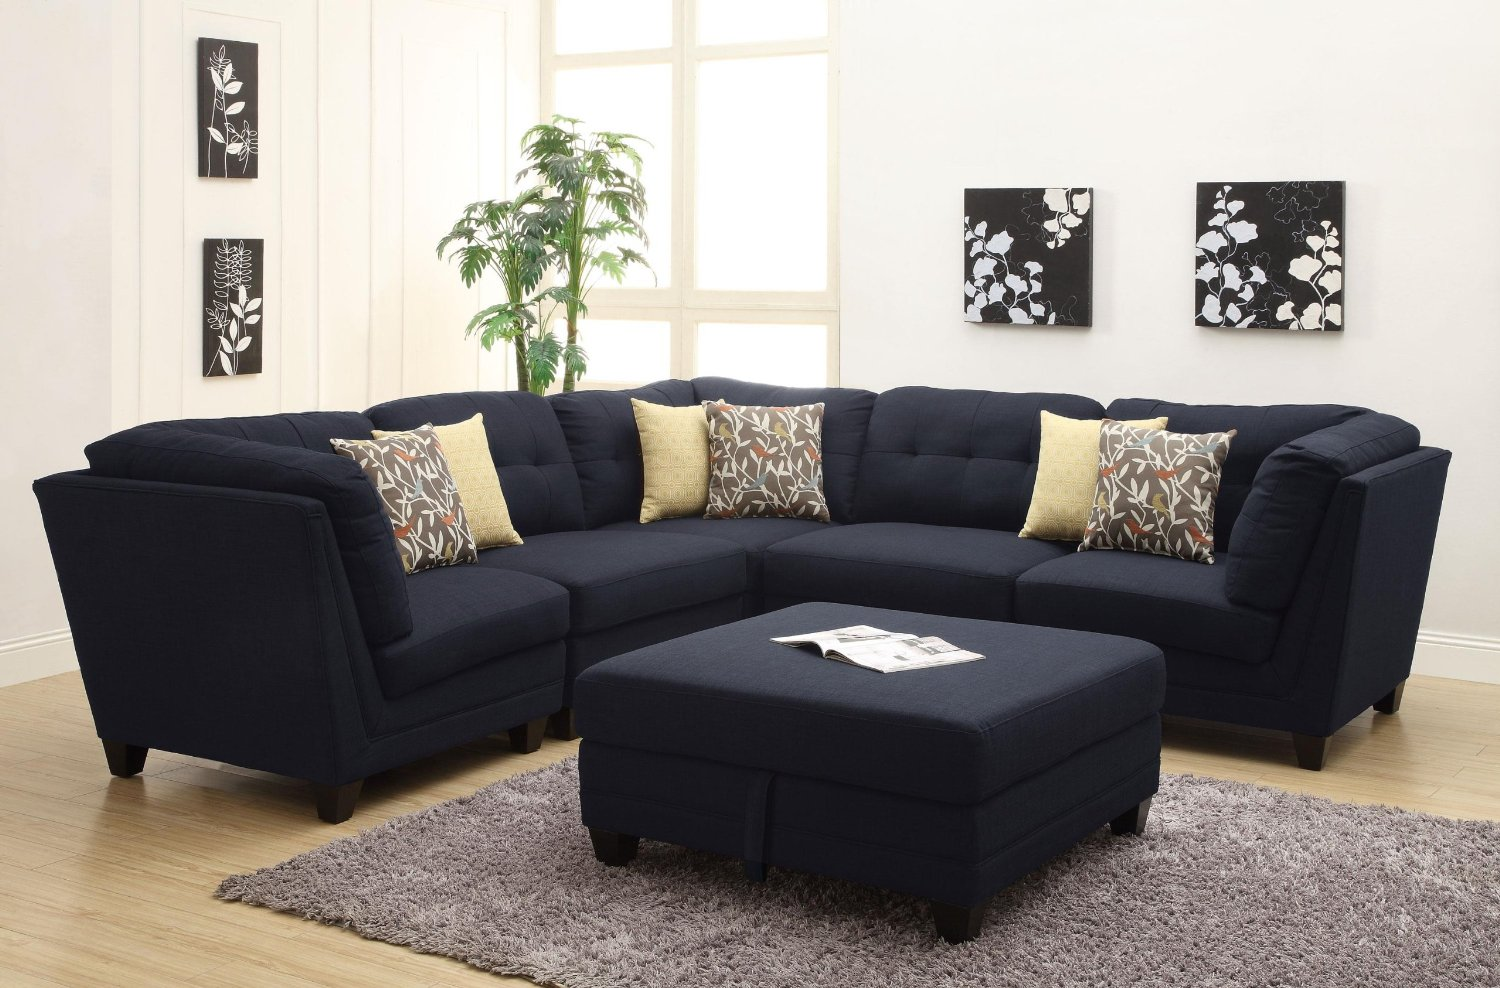 Good Most Comfortable Sectional Sofa In Black With Decorative Cushions Plus  Ottoman As A Coffee Table Together